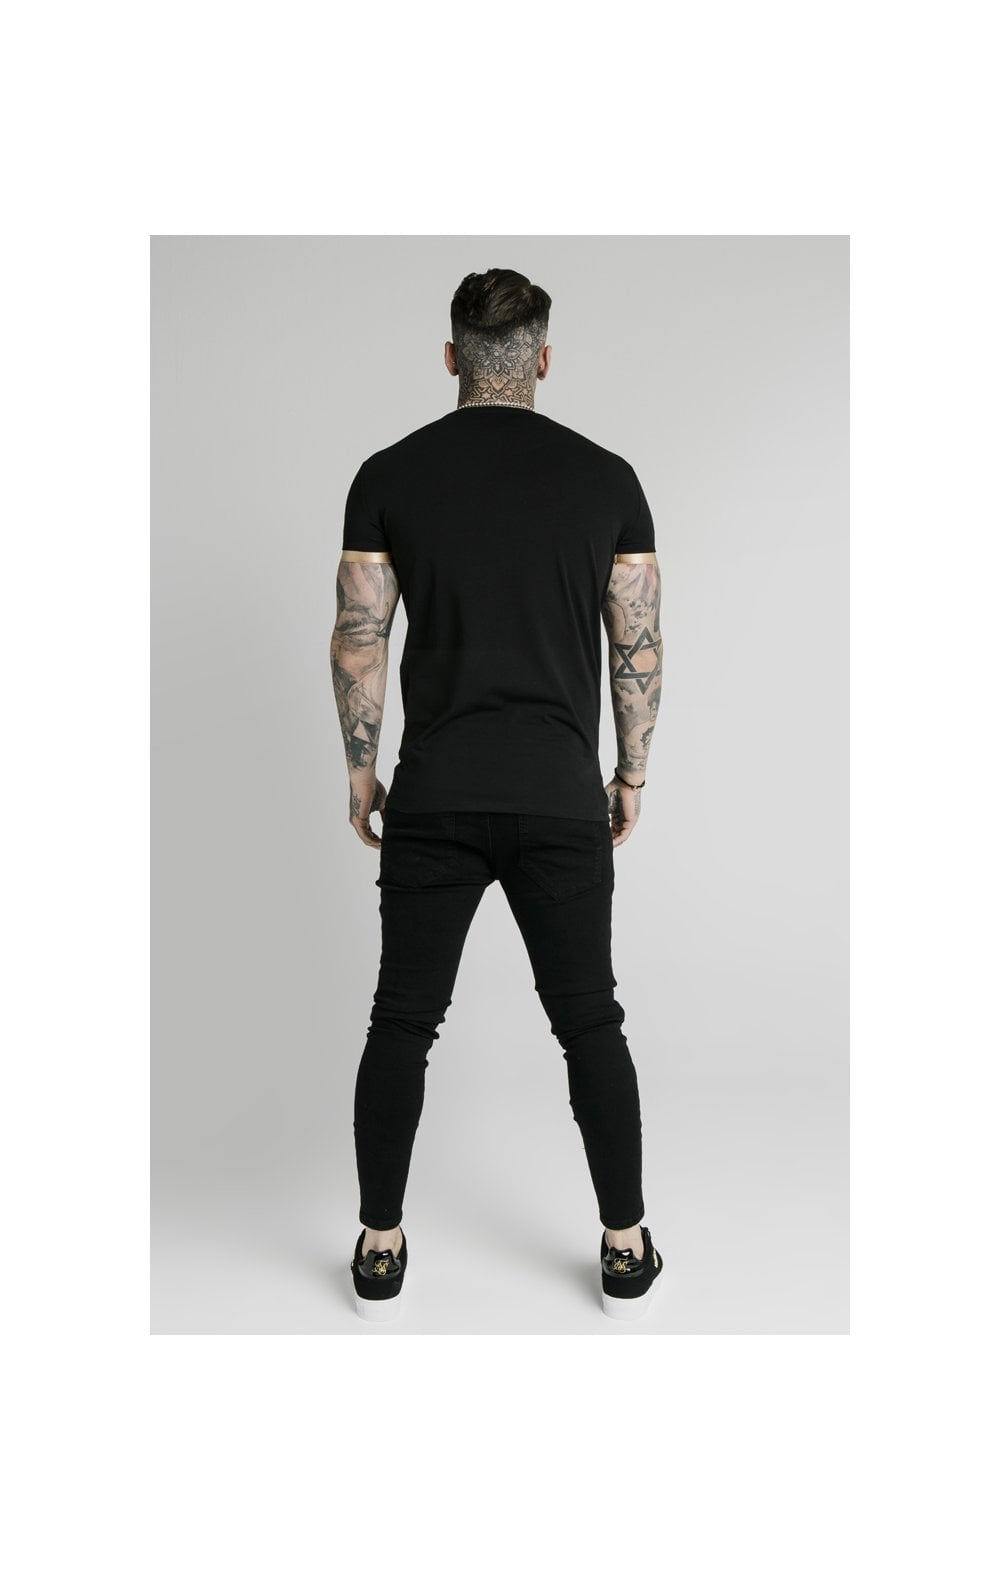 SikSilk S/S Inset Cuff Gym Tee – Black & Gold (6)